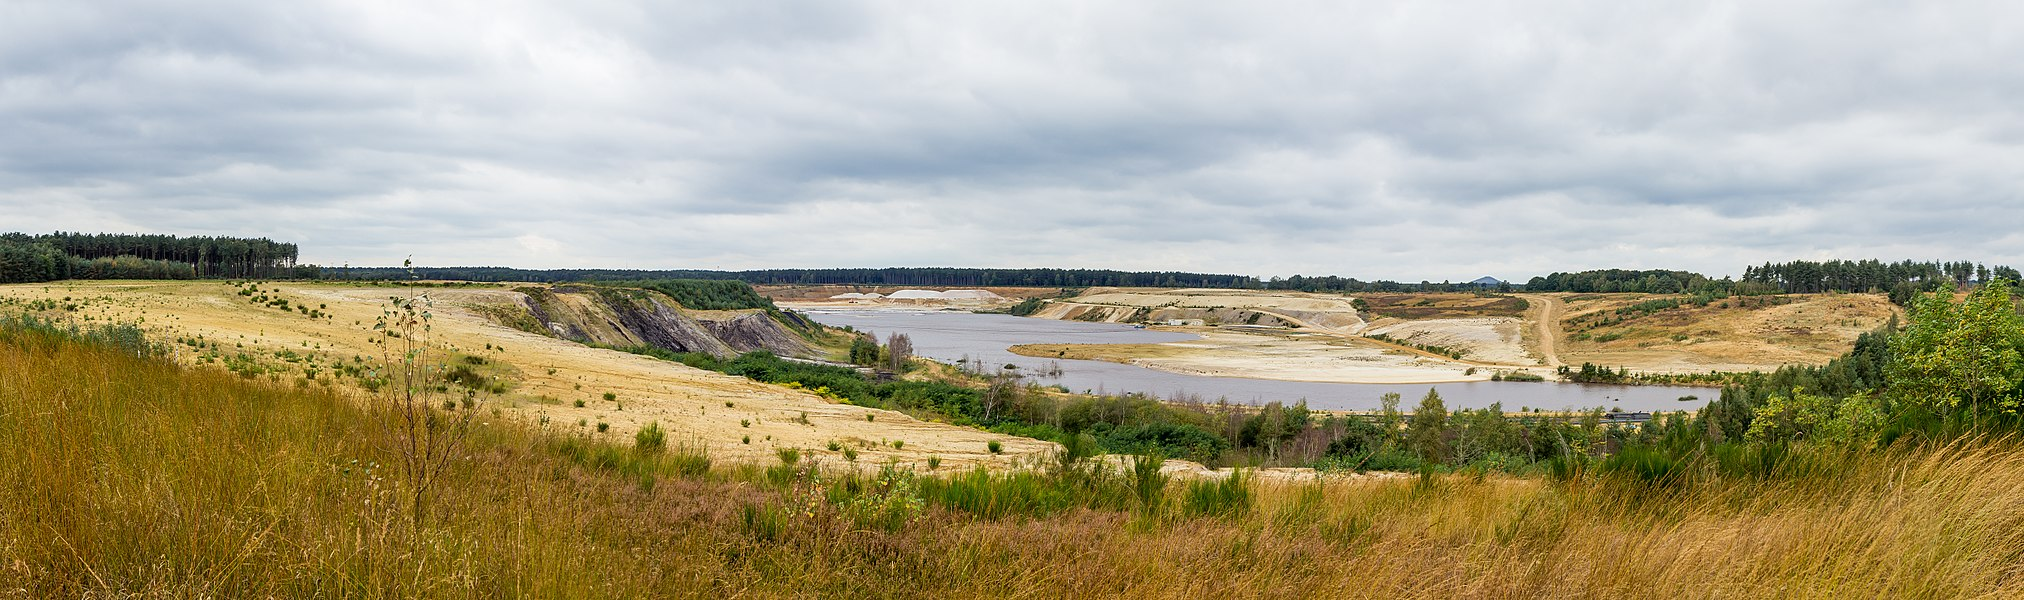 Mechelse Heide, Zandgroeve. Nationalspark Hoge Kempen